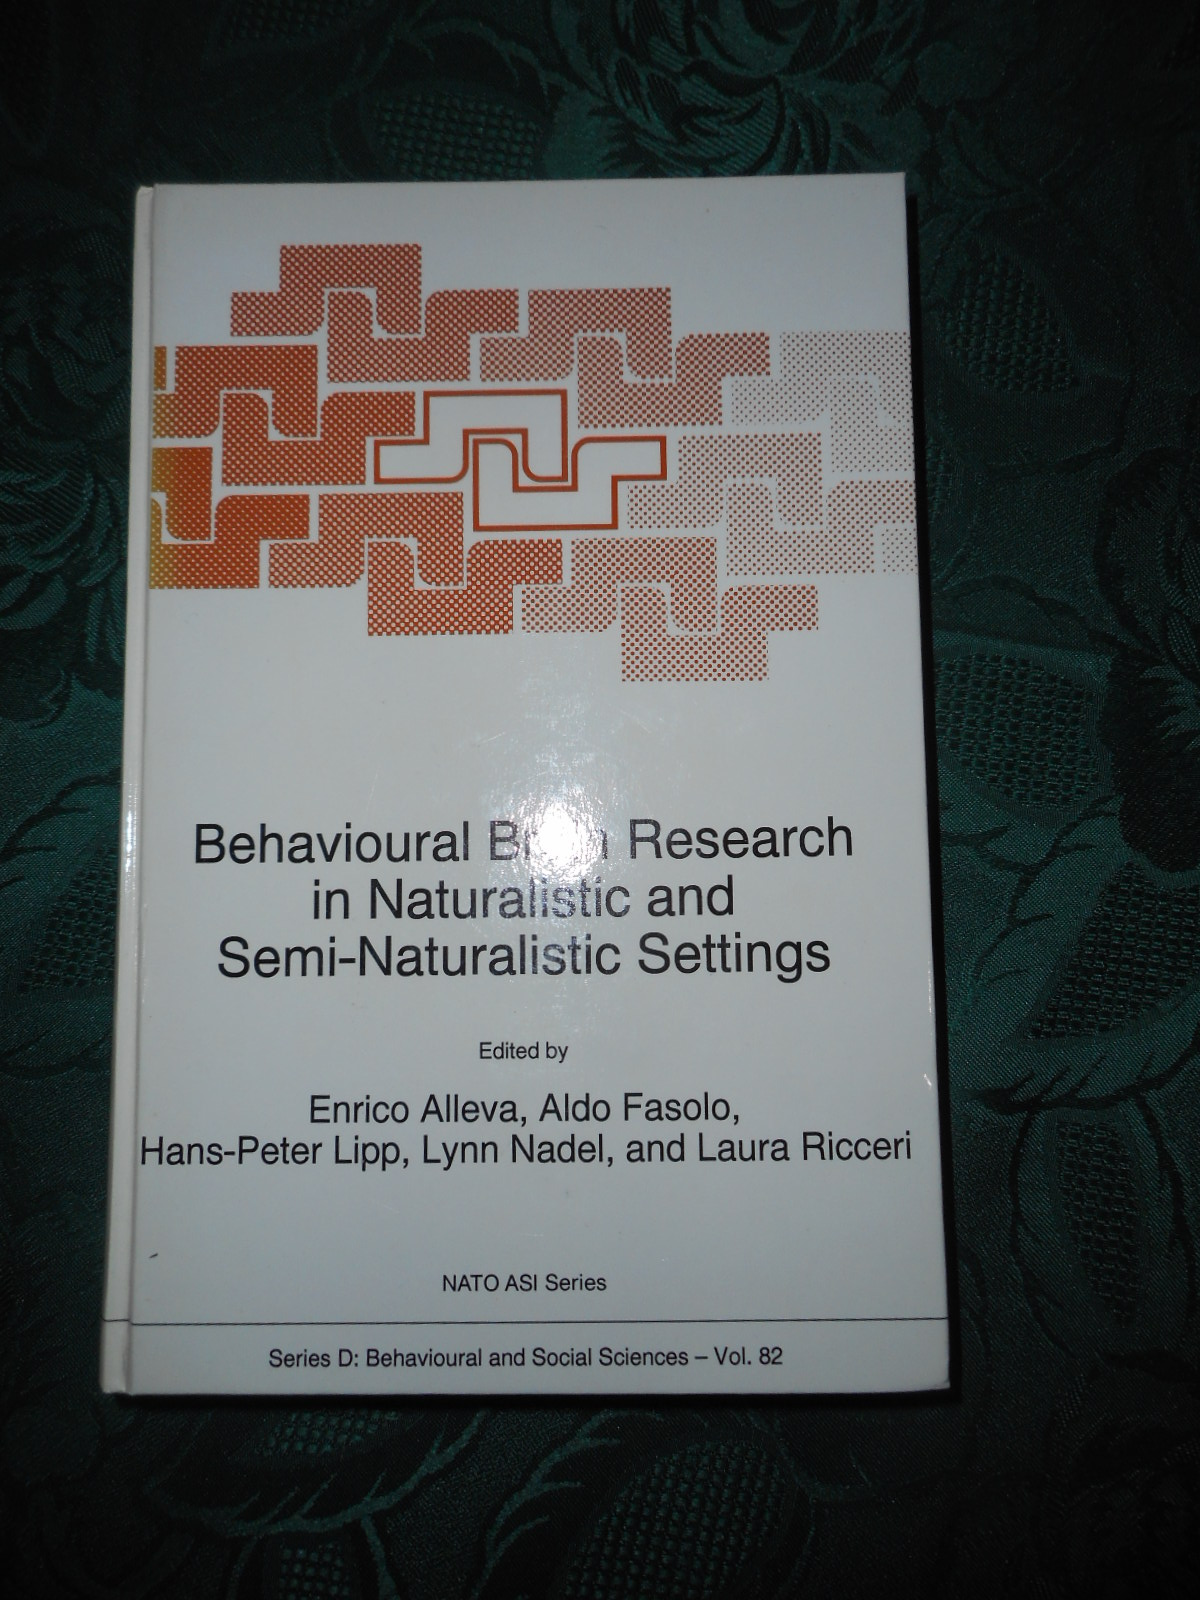 Image for Behavioural Brain Research in Naturalistic and Semi-Naturalistic Settings. Series D: Behavioural and Social Sciences - Vol. 82